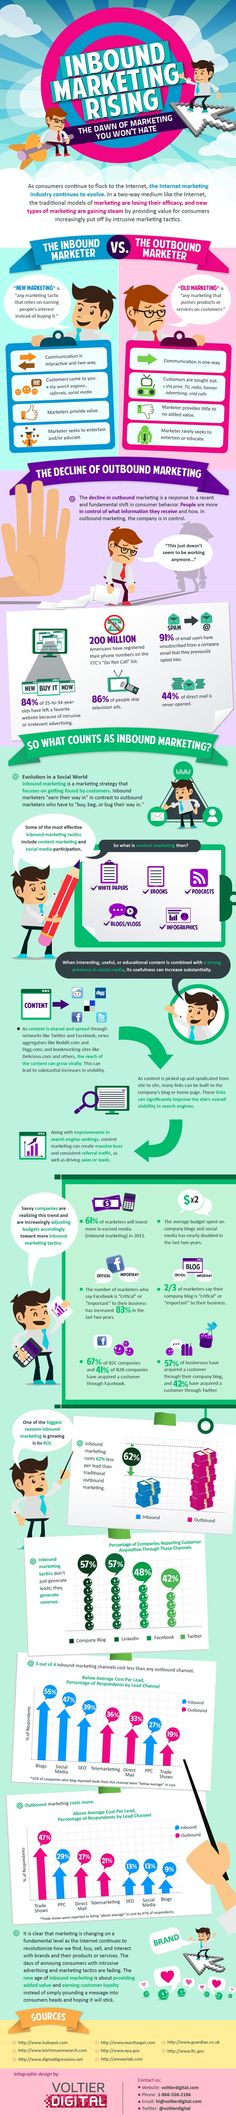 Decent infographic on how marketing is changing.  Importance of SEO, SEM, Social Media and a good inbound marketing strategy